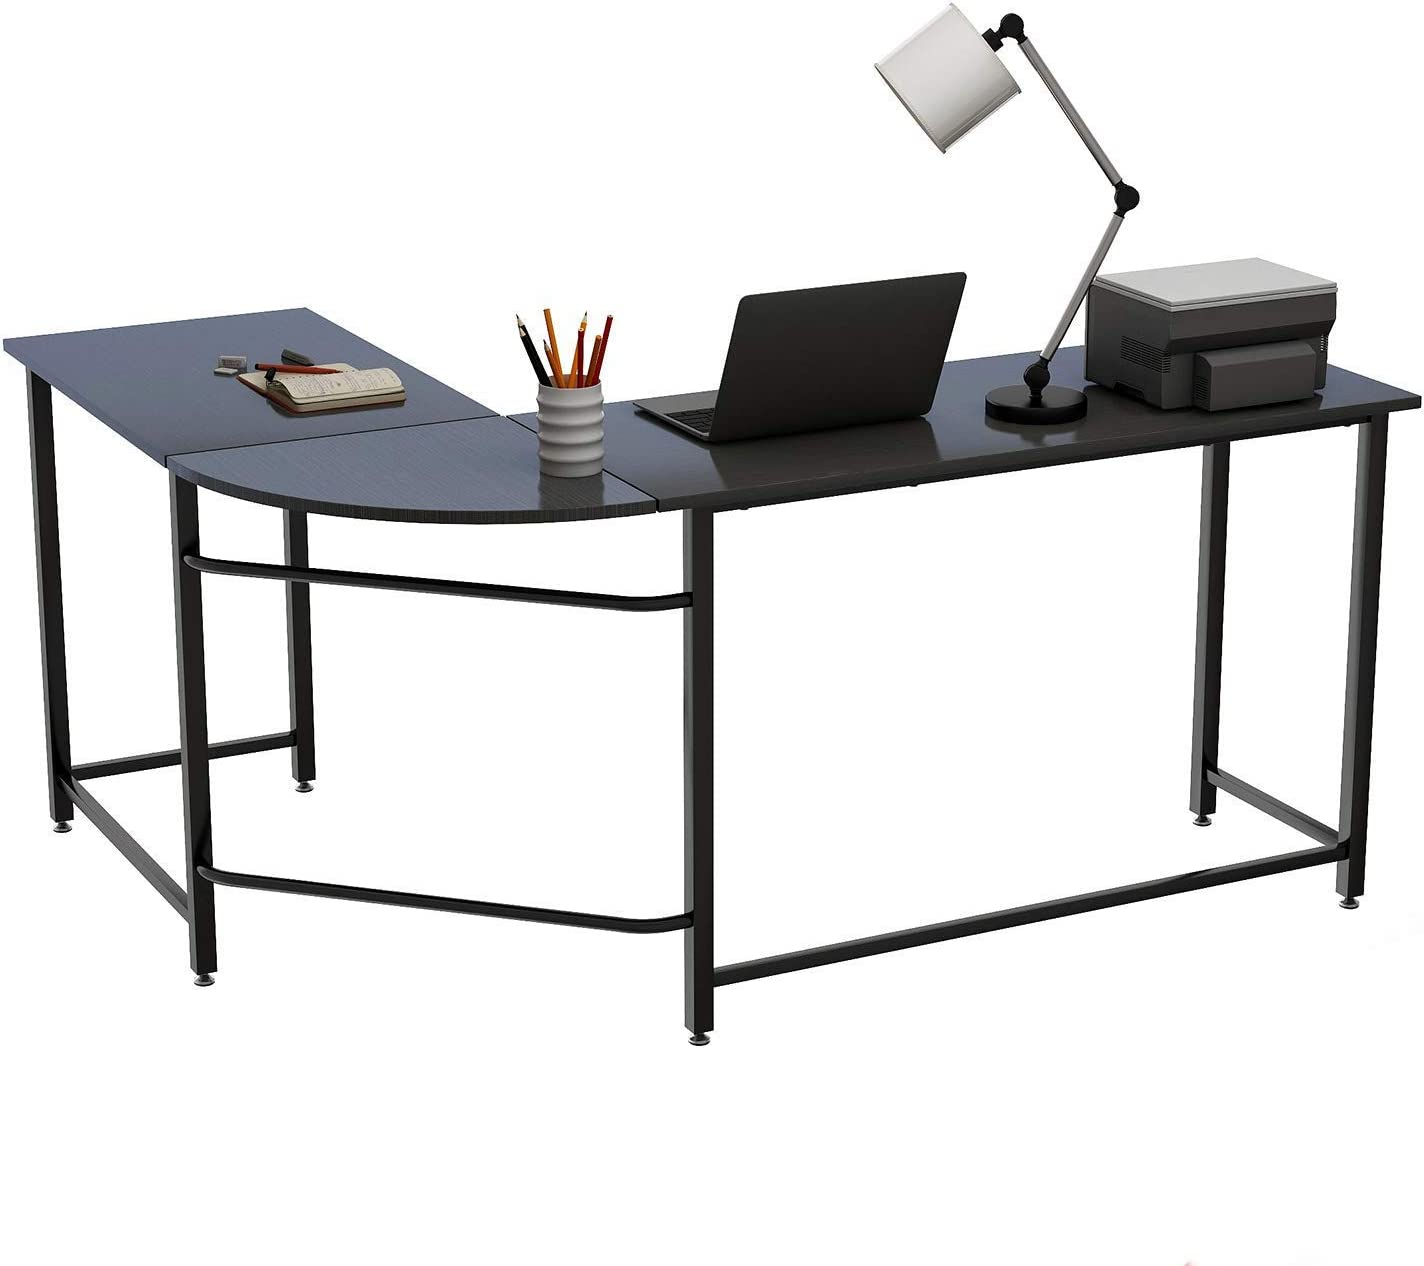 Home Office Desk, L-Shape Wood Metal Corner Gaming Table Workstation 66 x 49 with 19 Deep for PC Laptop Organizer, Black-a